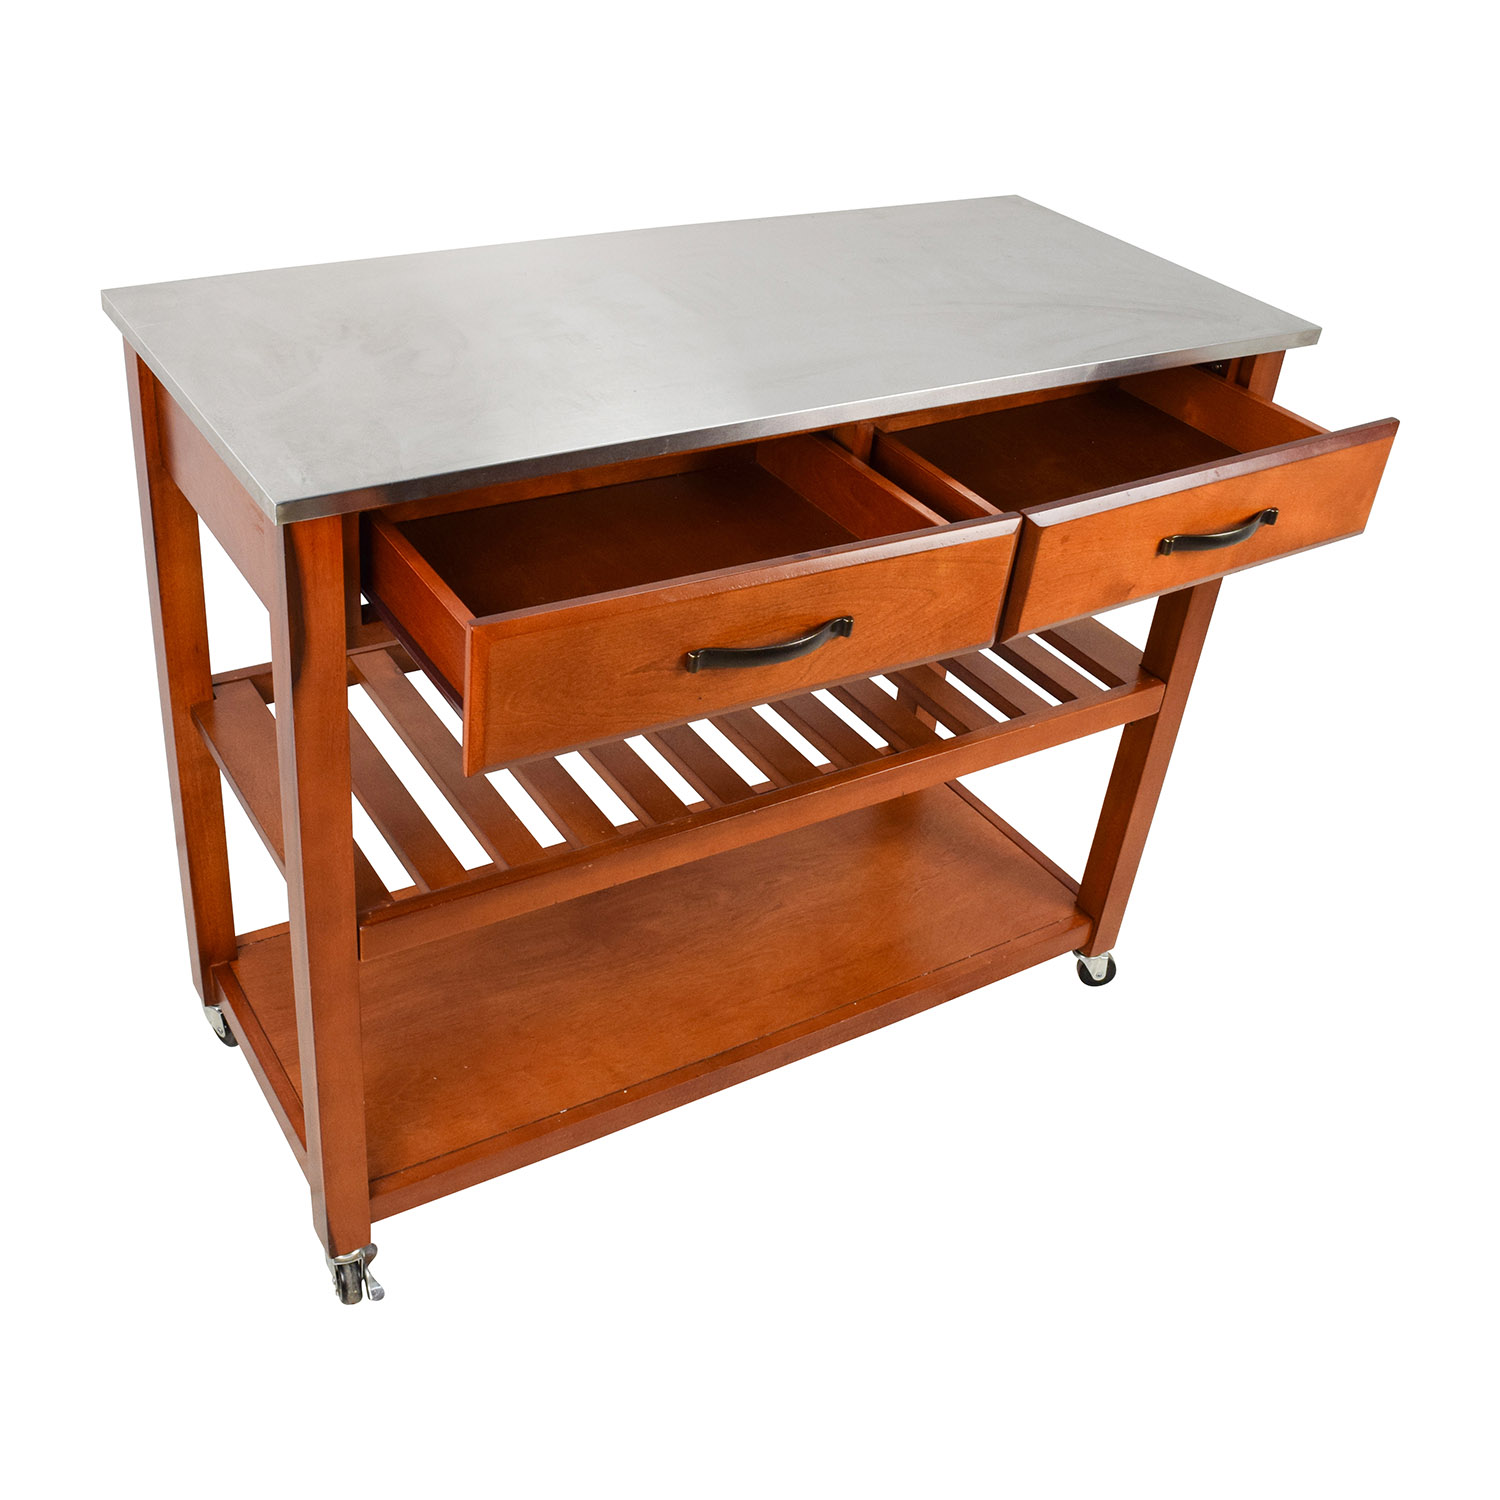 46 off crosley crosley natural wood top kitchen cart for Wood top kitchen table